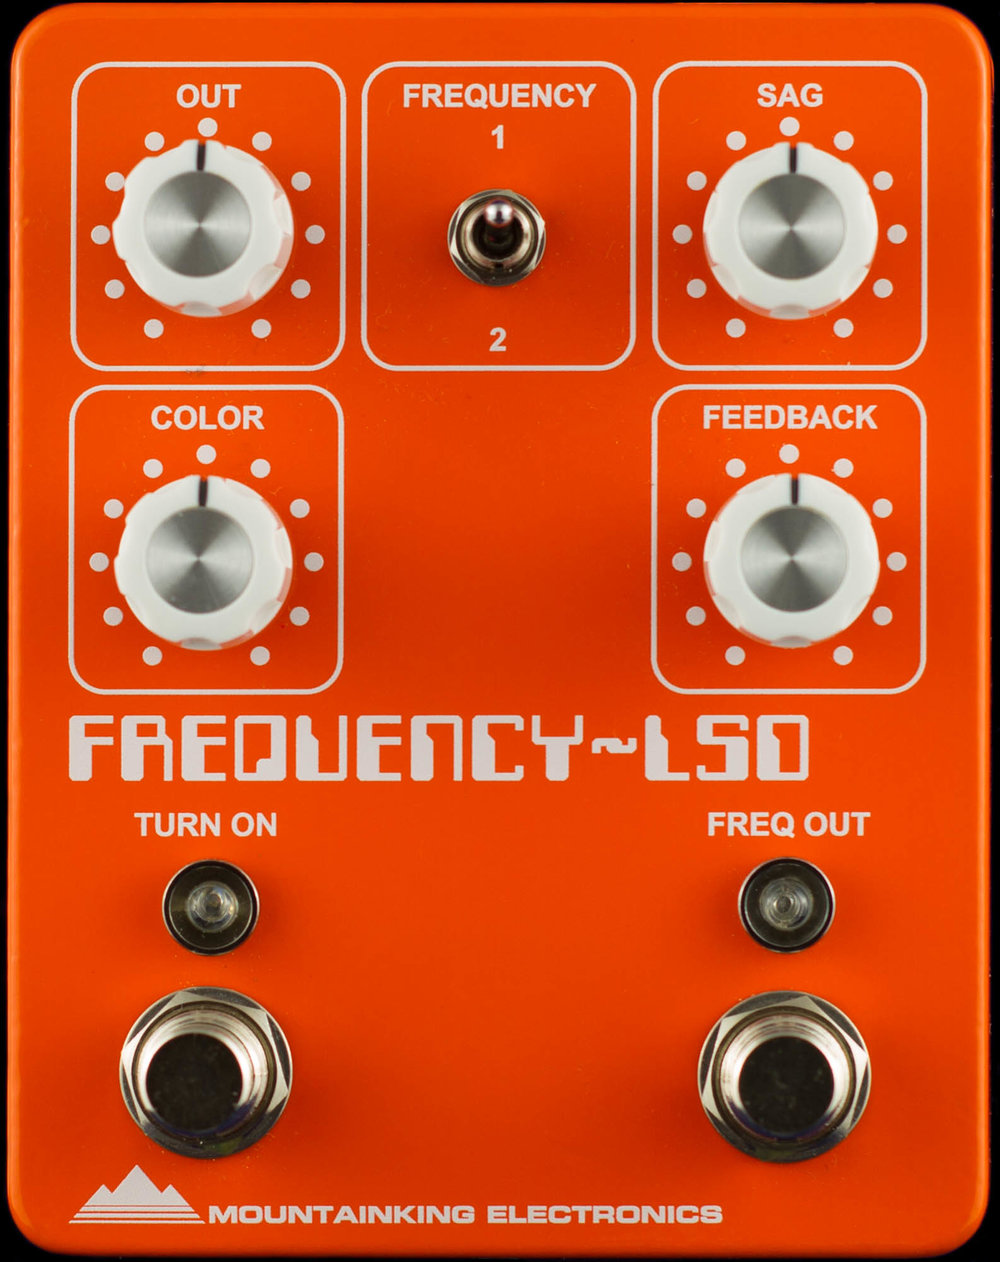 FREQUENCY LSD